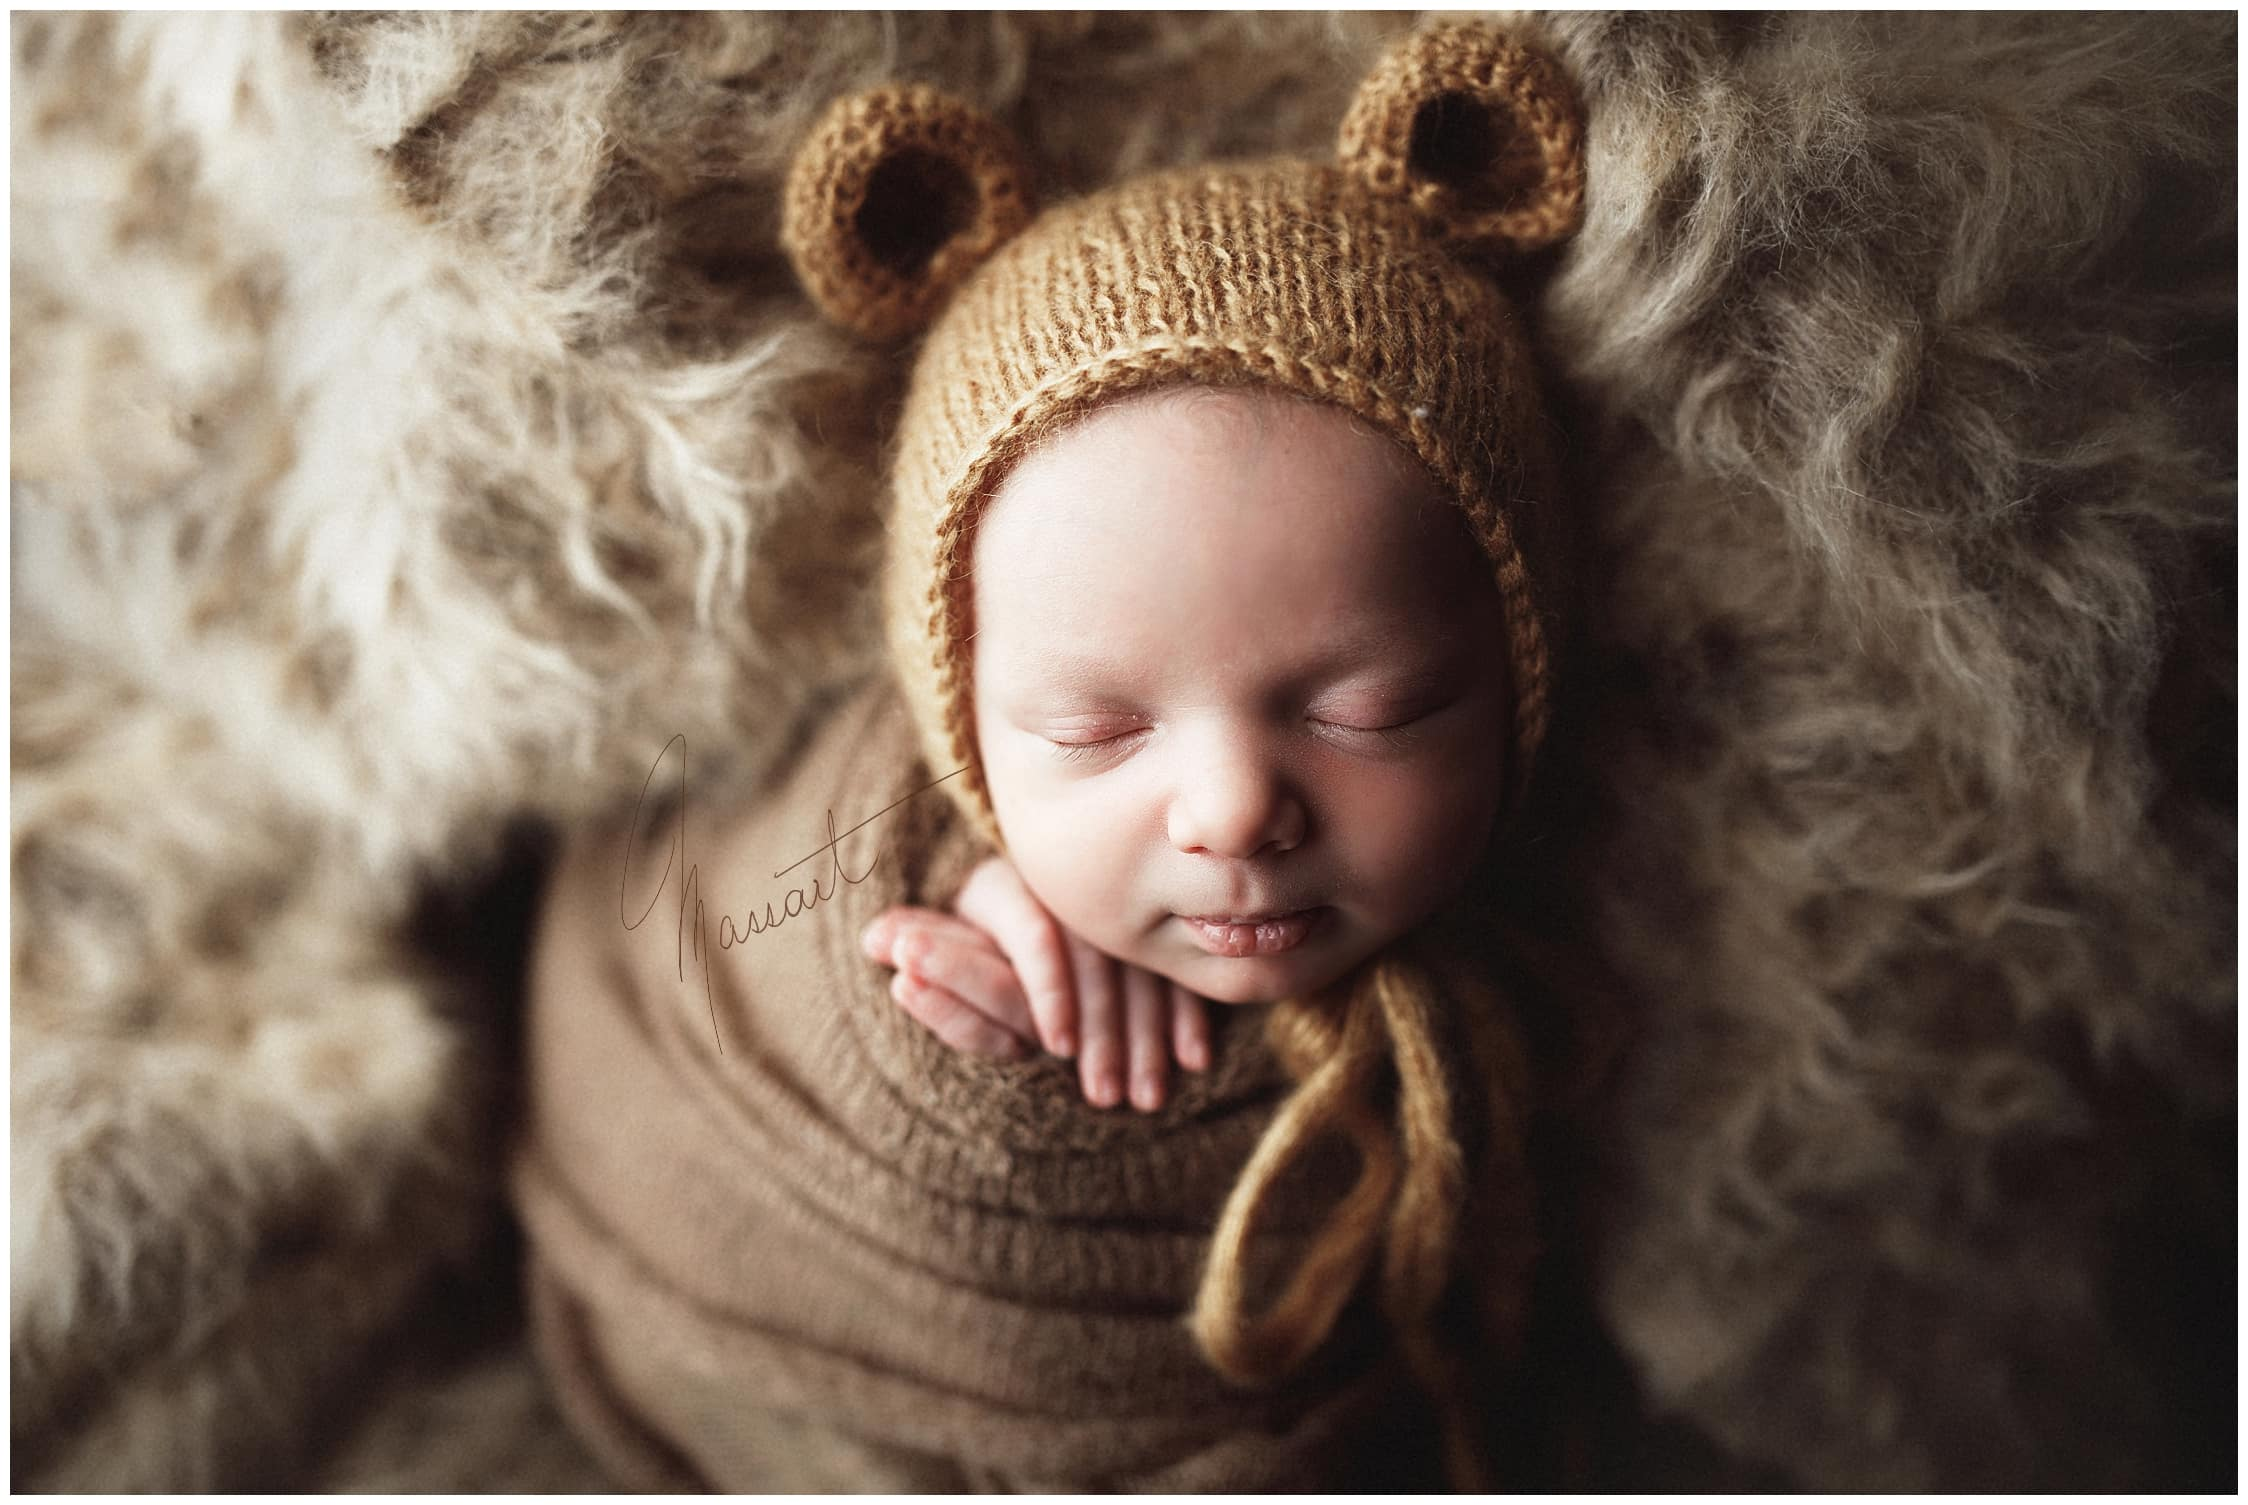 A sweet baby in a bear hat during his baby photo session in Rhode Island